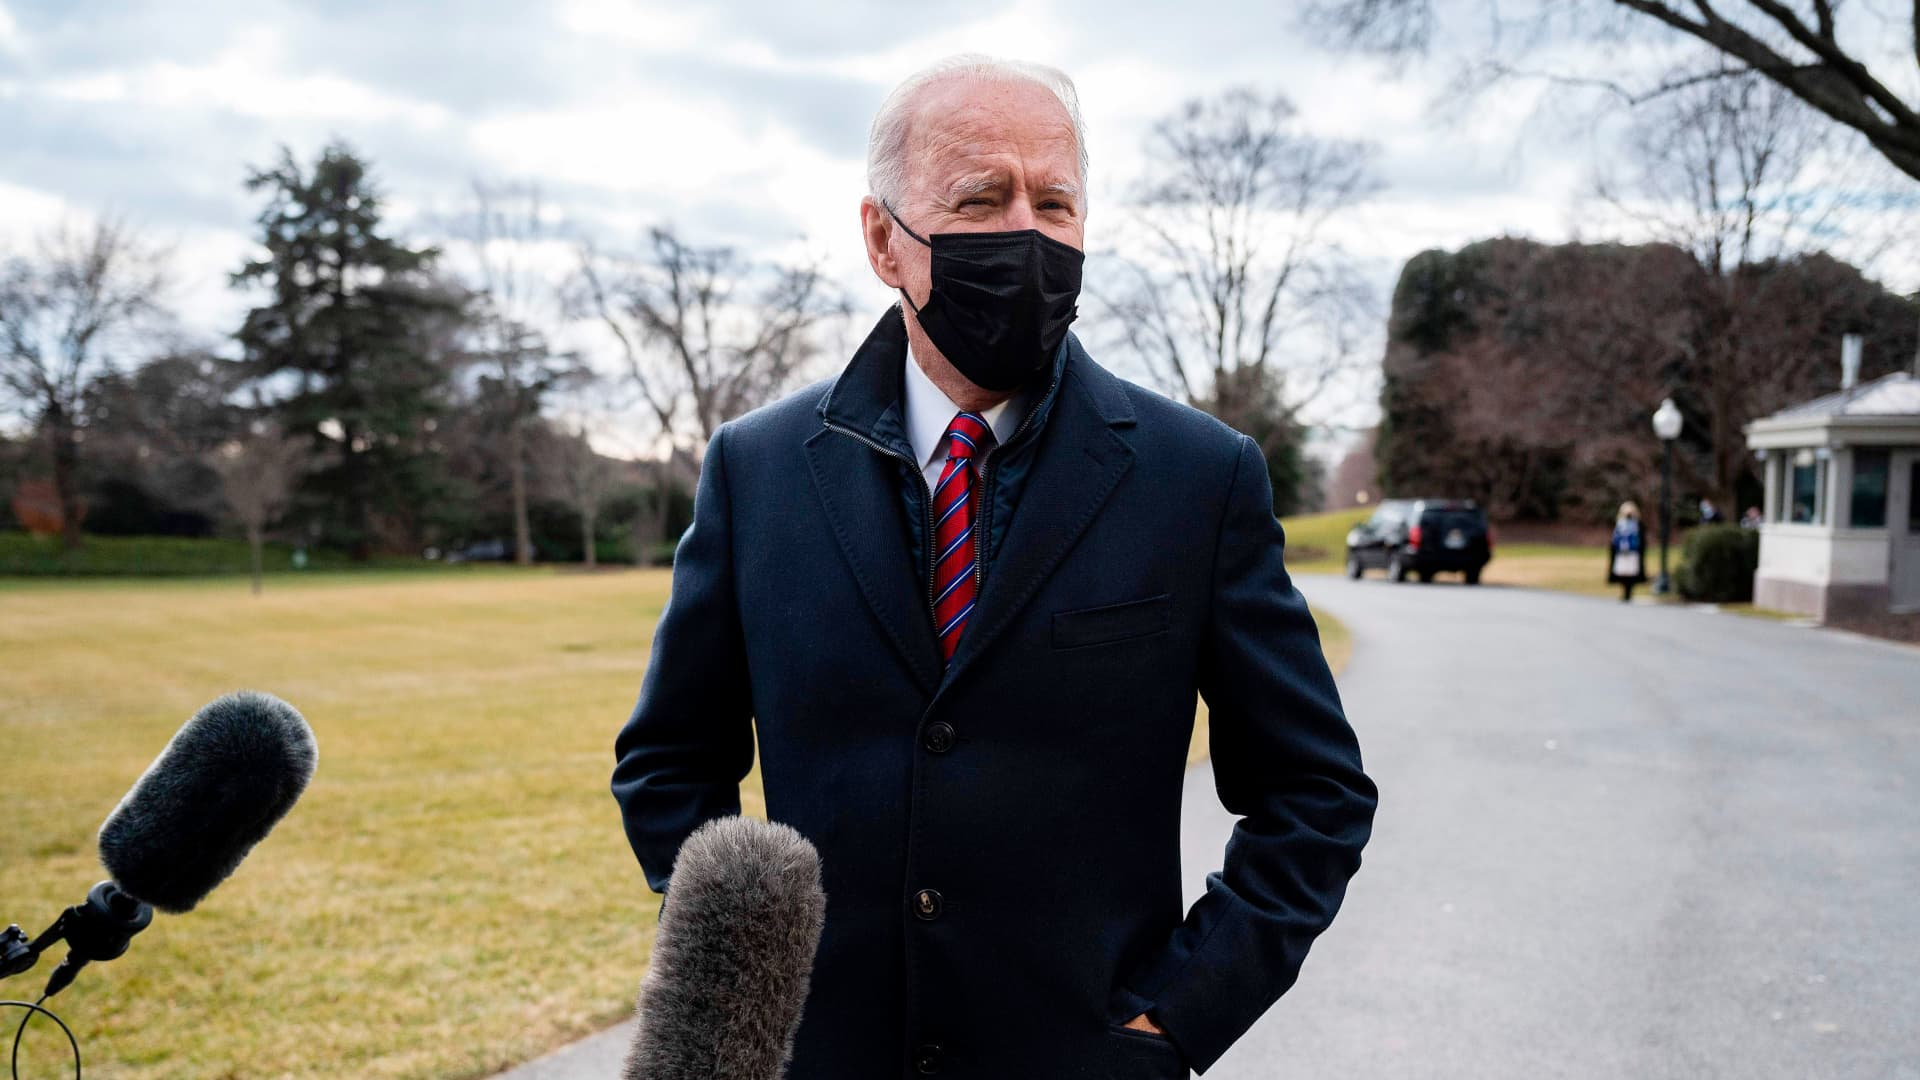 President Joe Biden speaks to the press as he departs the White House in Washington, DC, on January 29, 2021. - Biden travels to Walter Reed National Military Medical Center in Bethesda, Maryland.